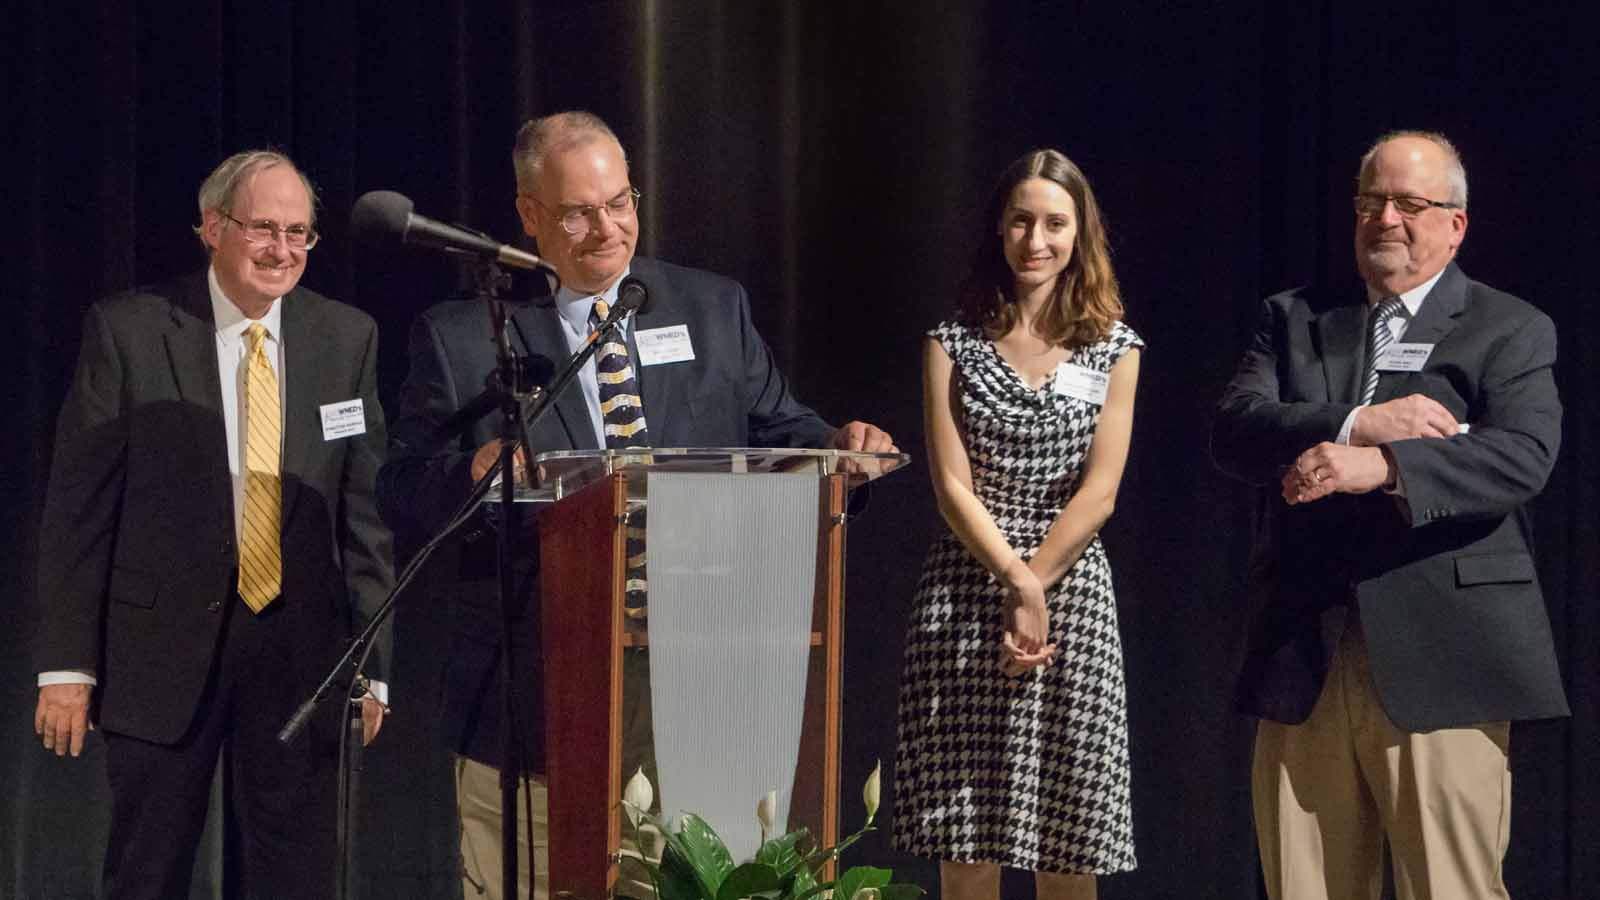 Classical 94.5's Stratton Rawson, Peter Hall, Bob Krum and Anna Whistler served as masters of ceremonies with special guests including past program hosts.